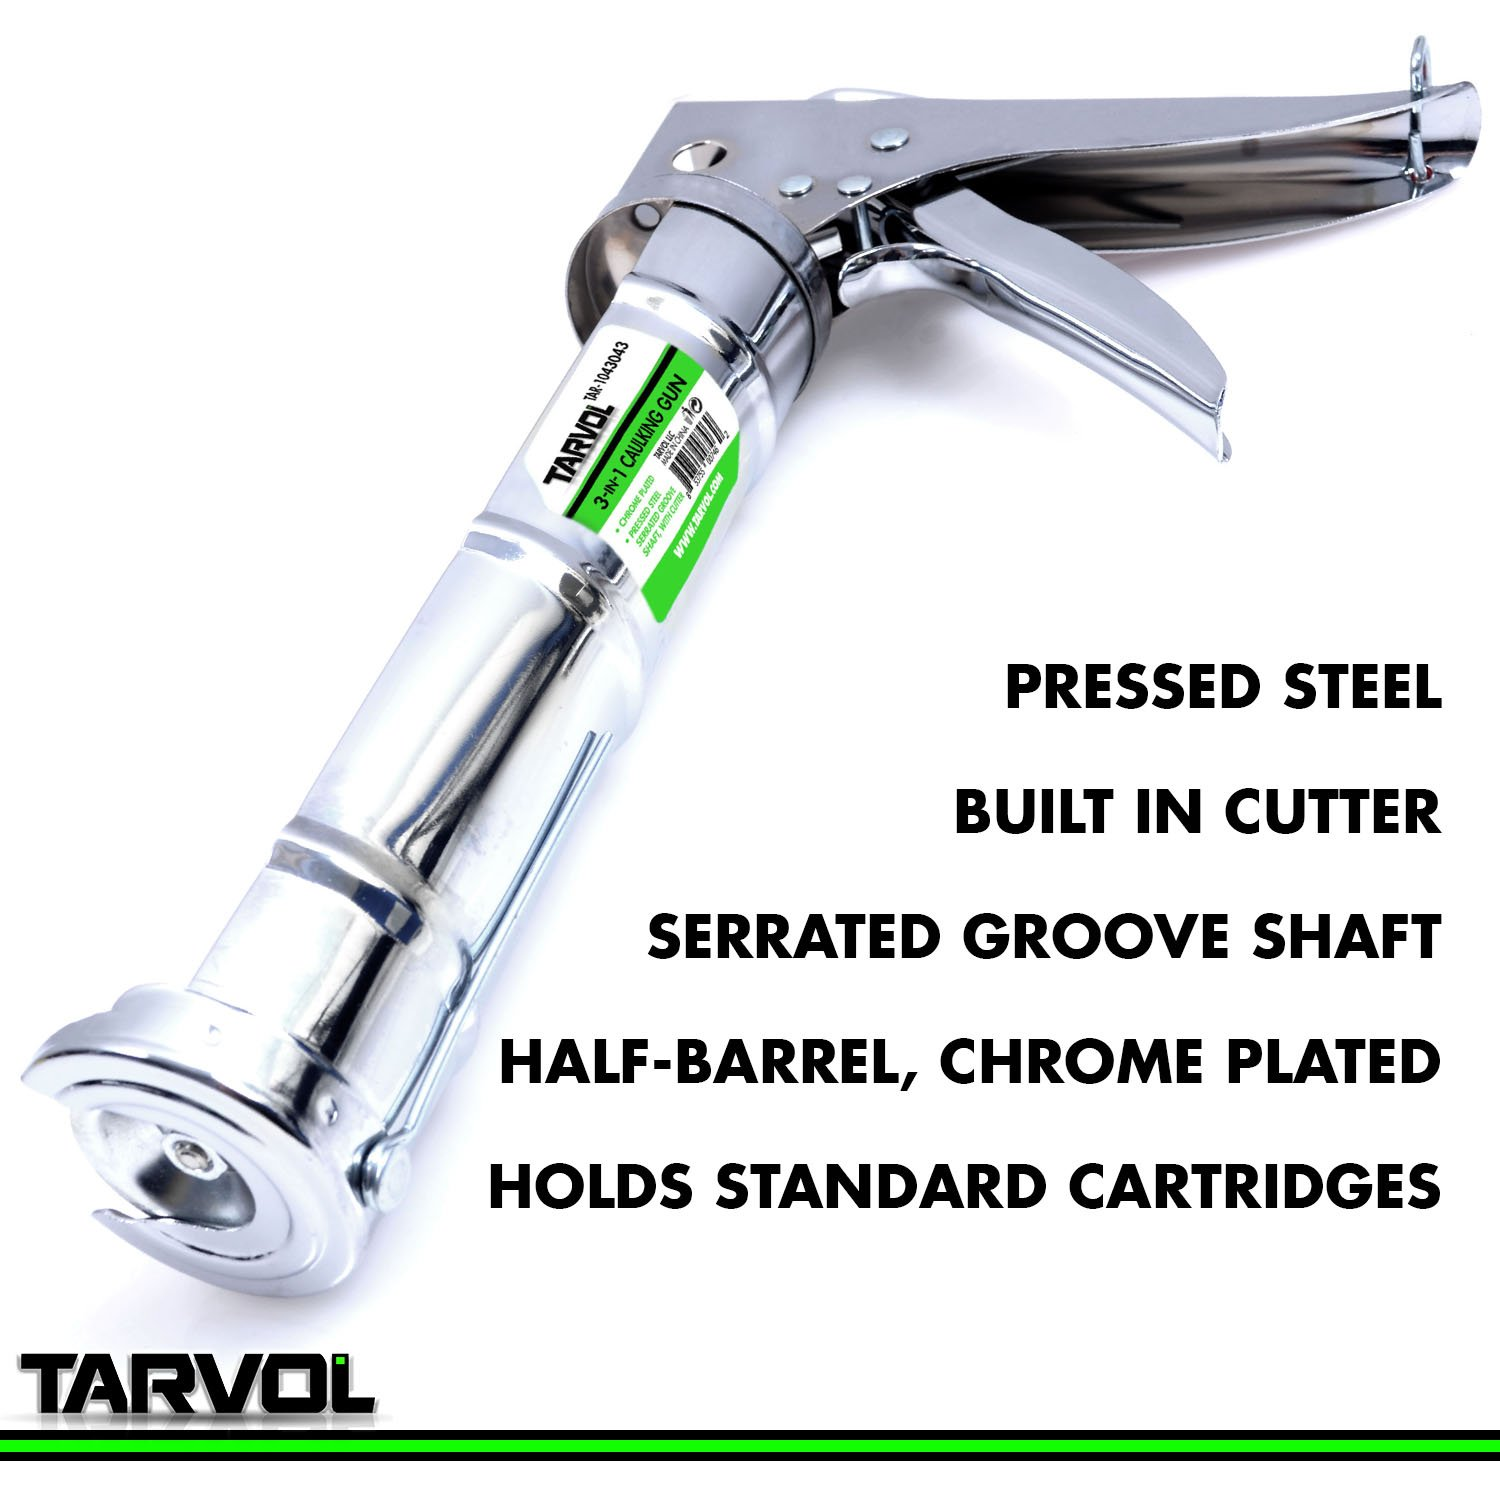 3 in 1 Caulking Gun (HEAVY DUTY CHROME PLATED) Fits Standard Size 10oz Caulk - Refillable 3 in 1 Design Includes Built in Cutter and Puncher Tool - Perfect for Industrial & Home Use! by Tarvol (Image #2)